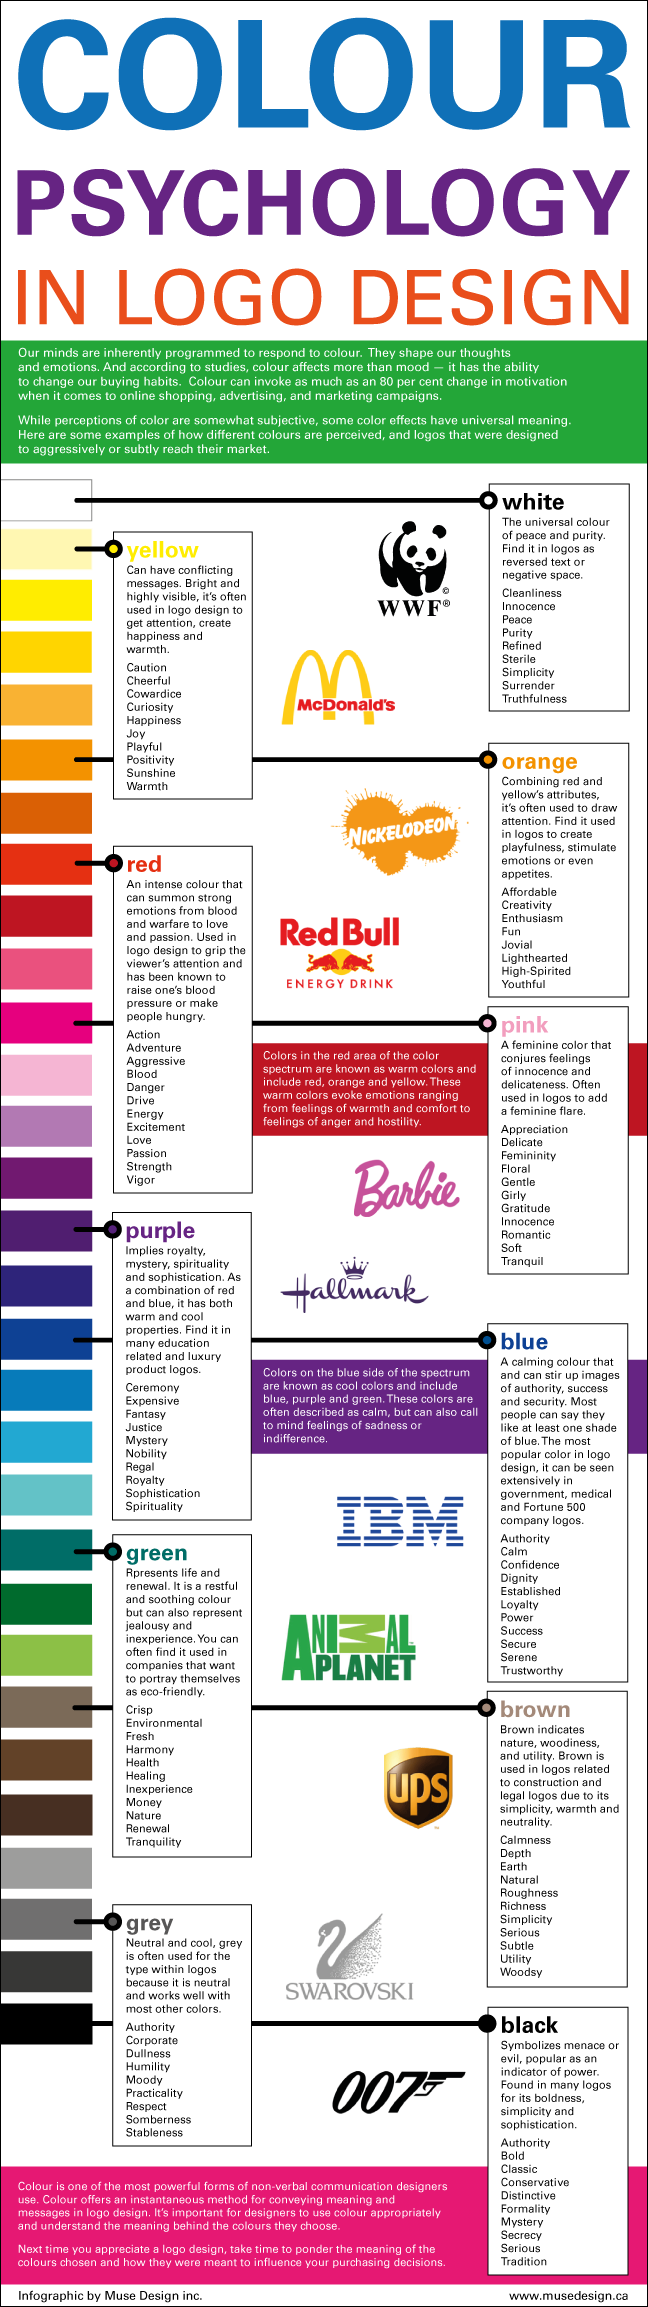 Colour-Psychology-Infographic-design